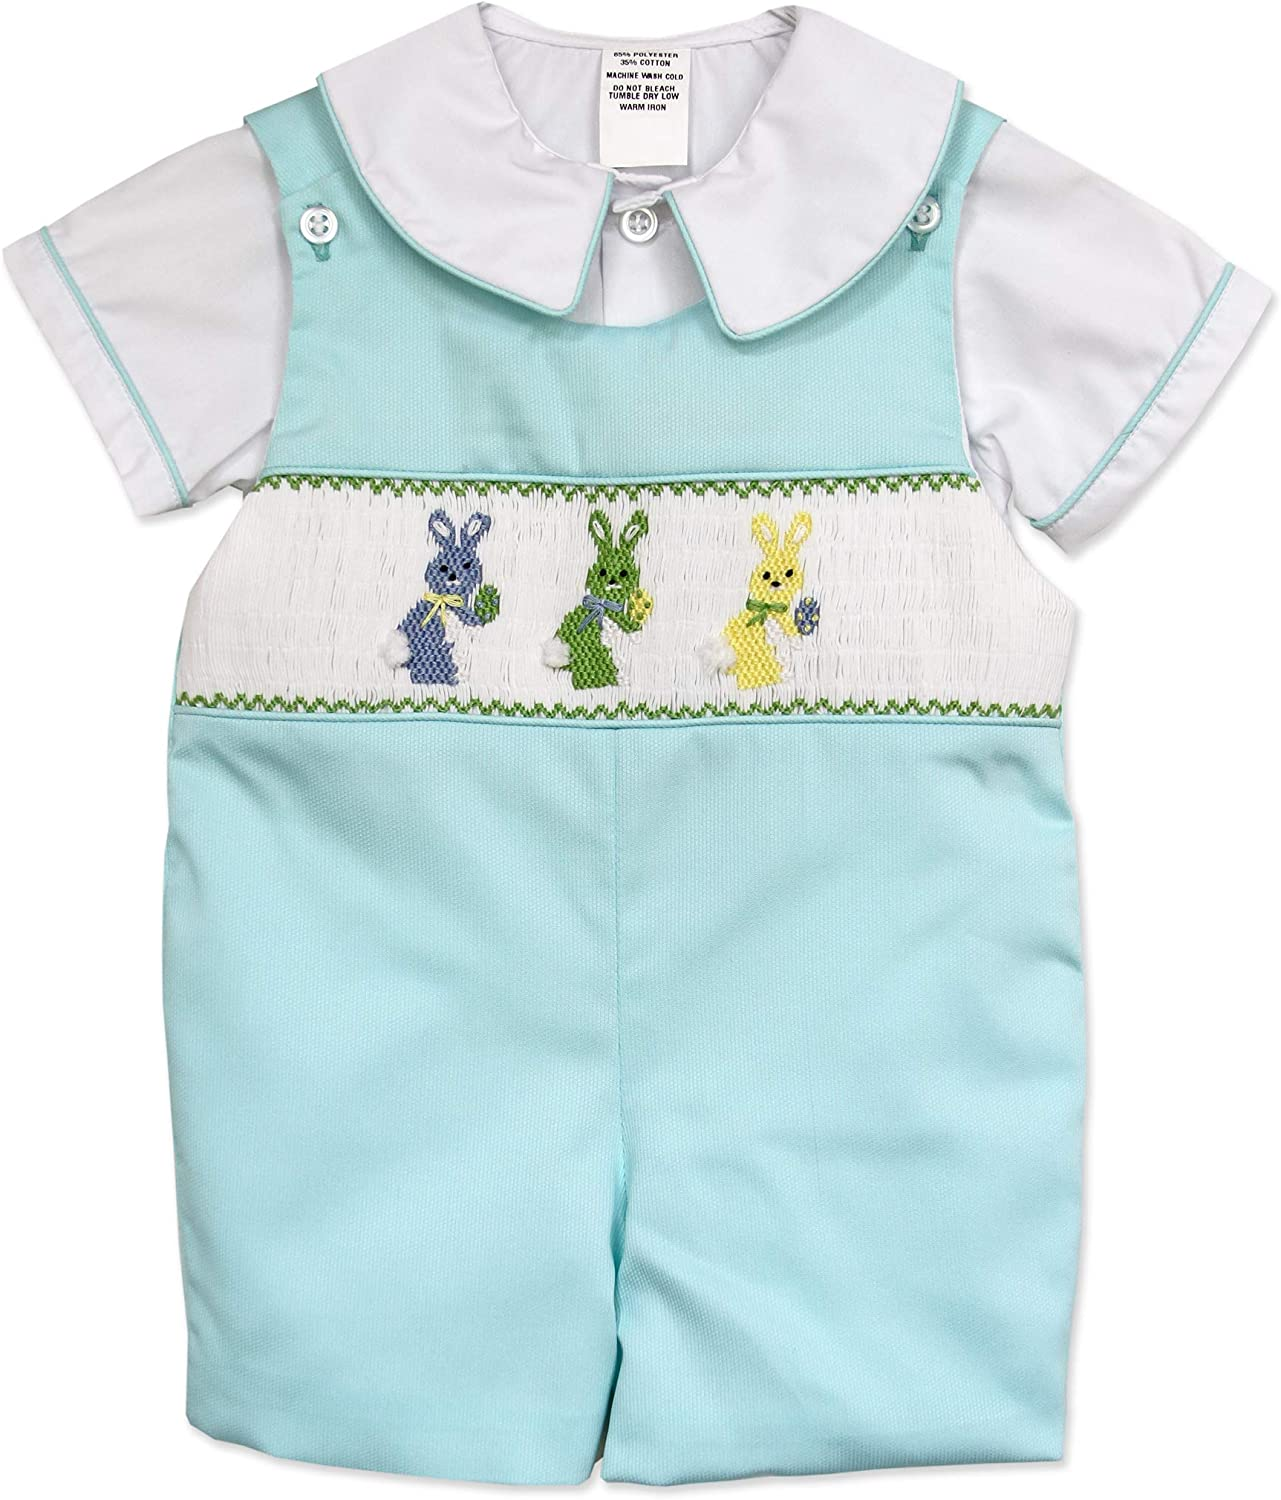 outfit boys easter outfit,cross easter shirt toddler easter shirt Boys easter shirt religious easter outfit